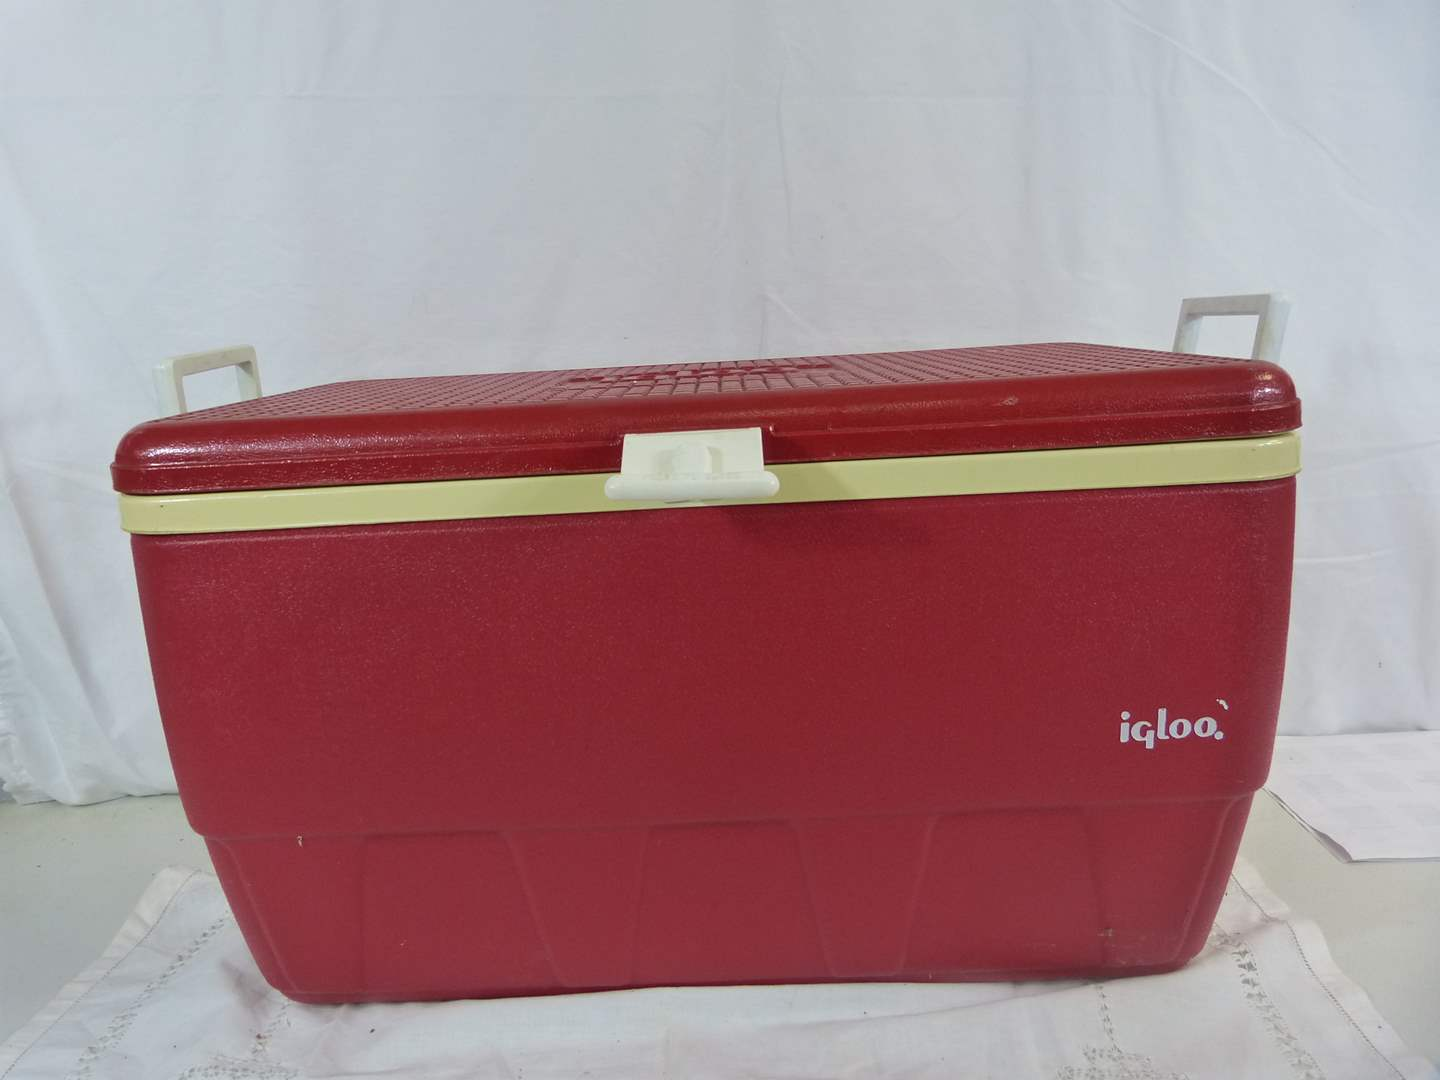 Lot # 40 Large Igloo cooler (good condition) (main image)